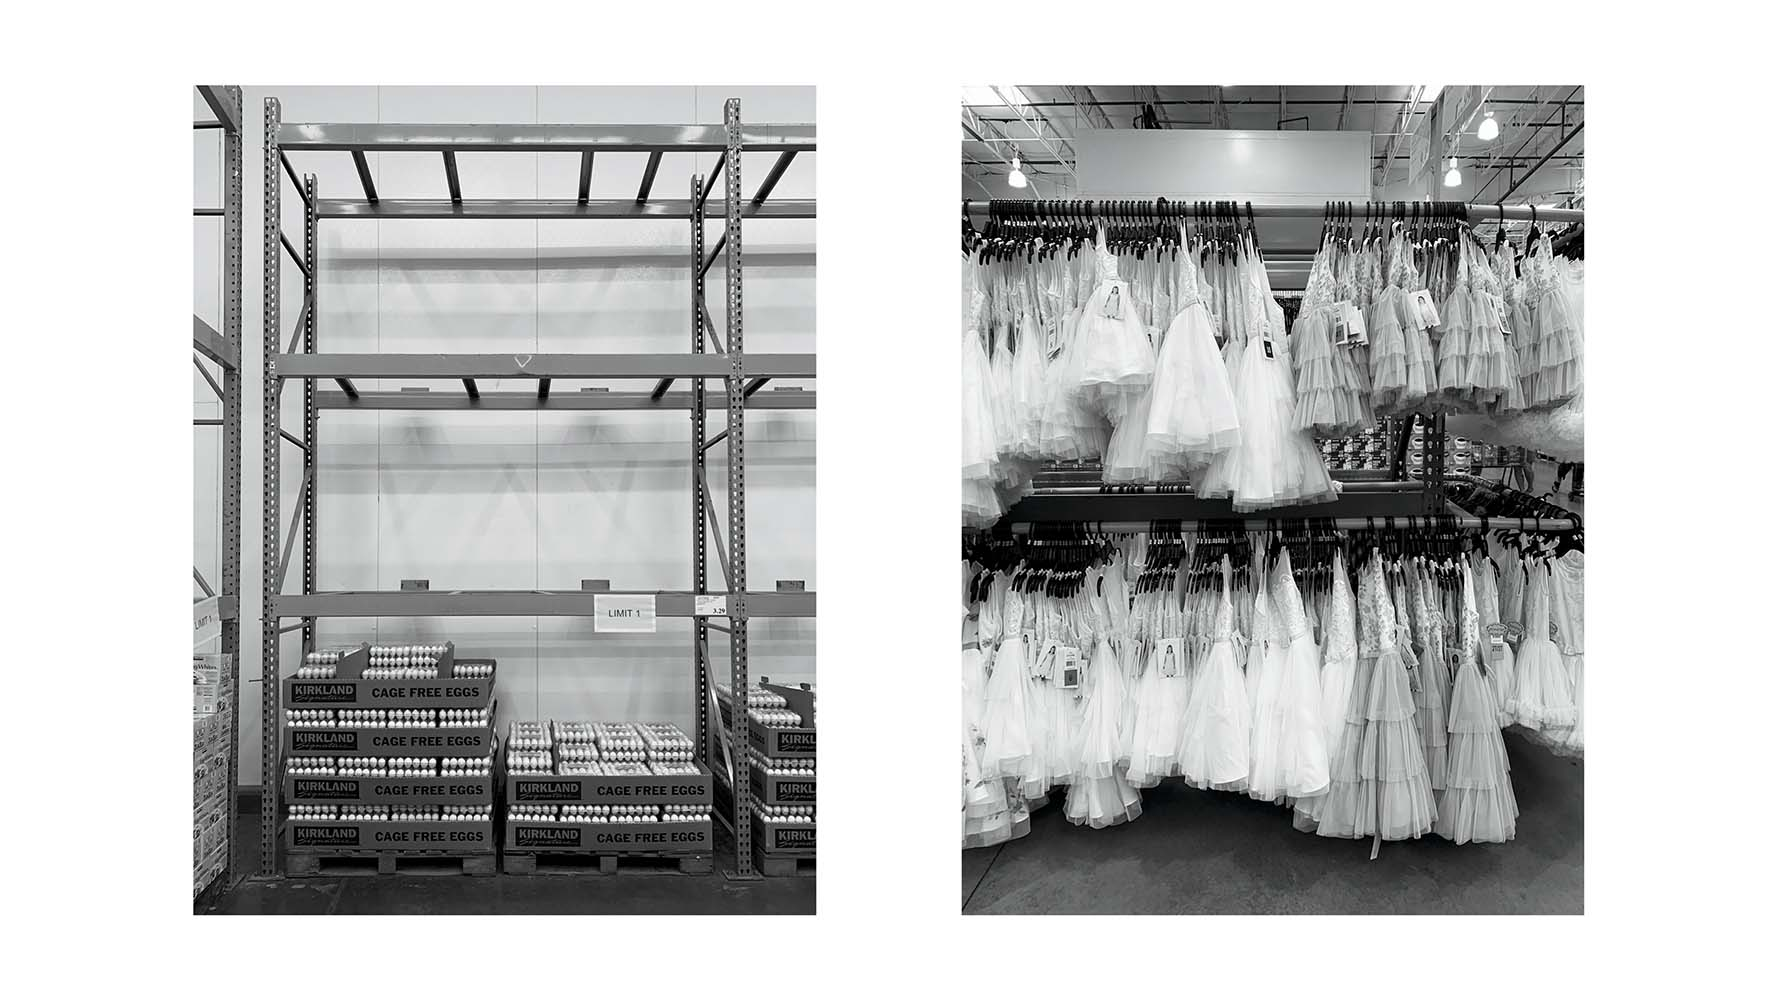 diptych of empty and full store shelves